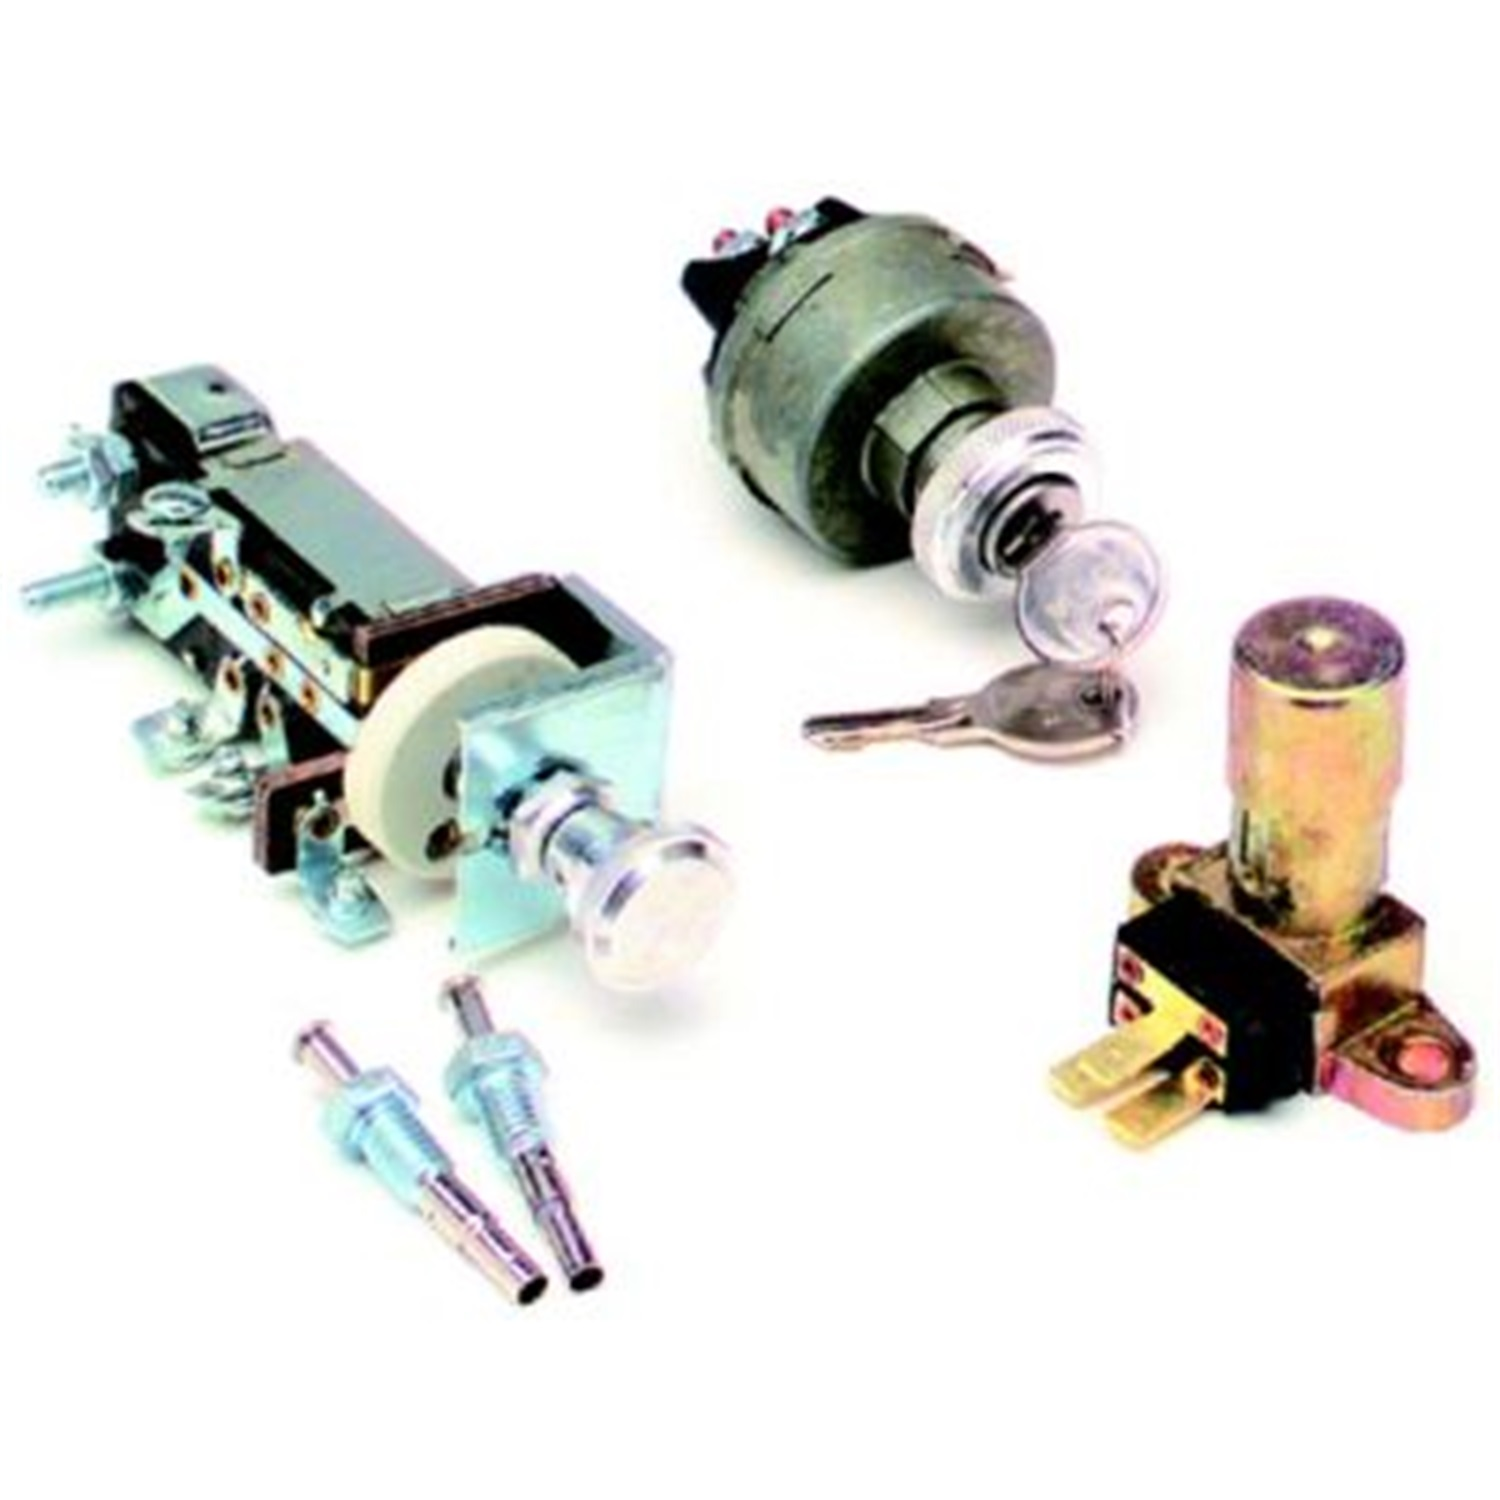 hight resolution of painless 80121 head light door jamb dimmer ignition switch kit pi speedshops